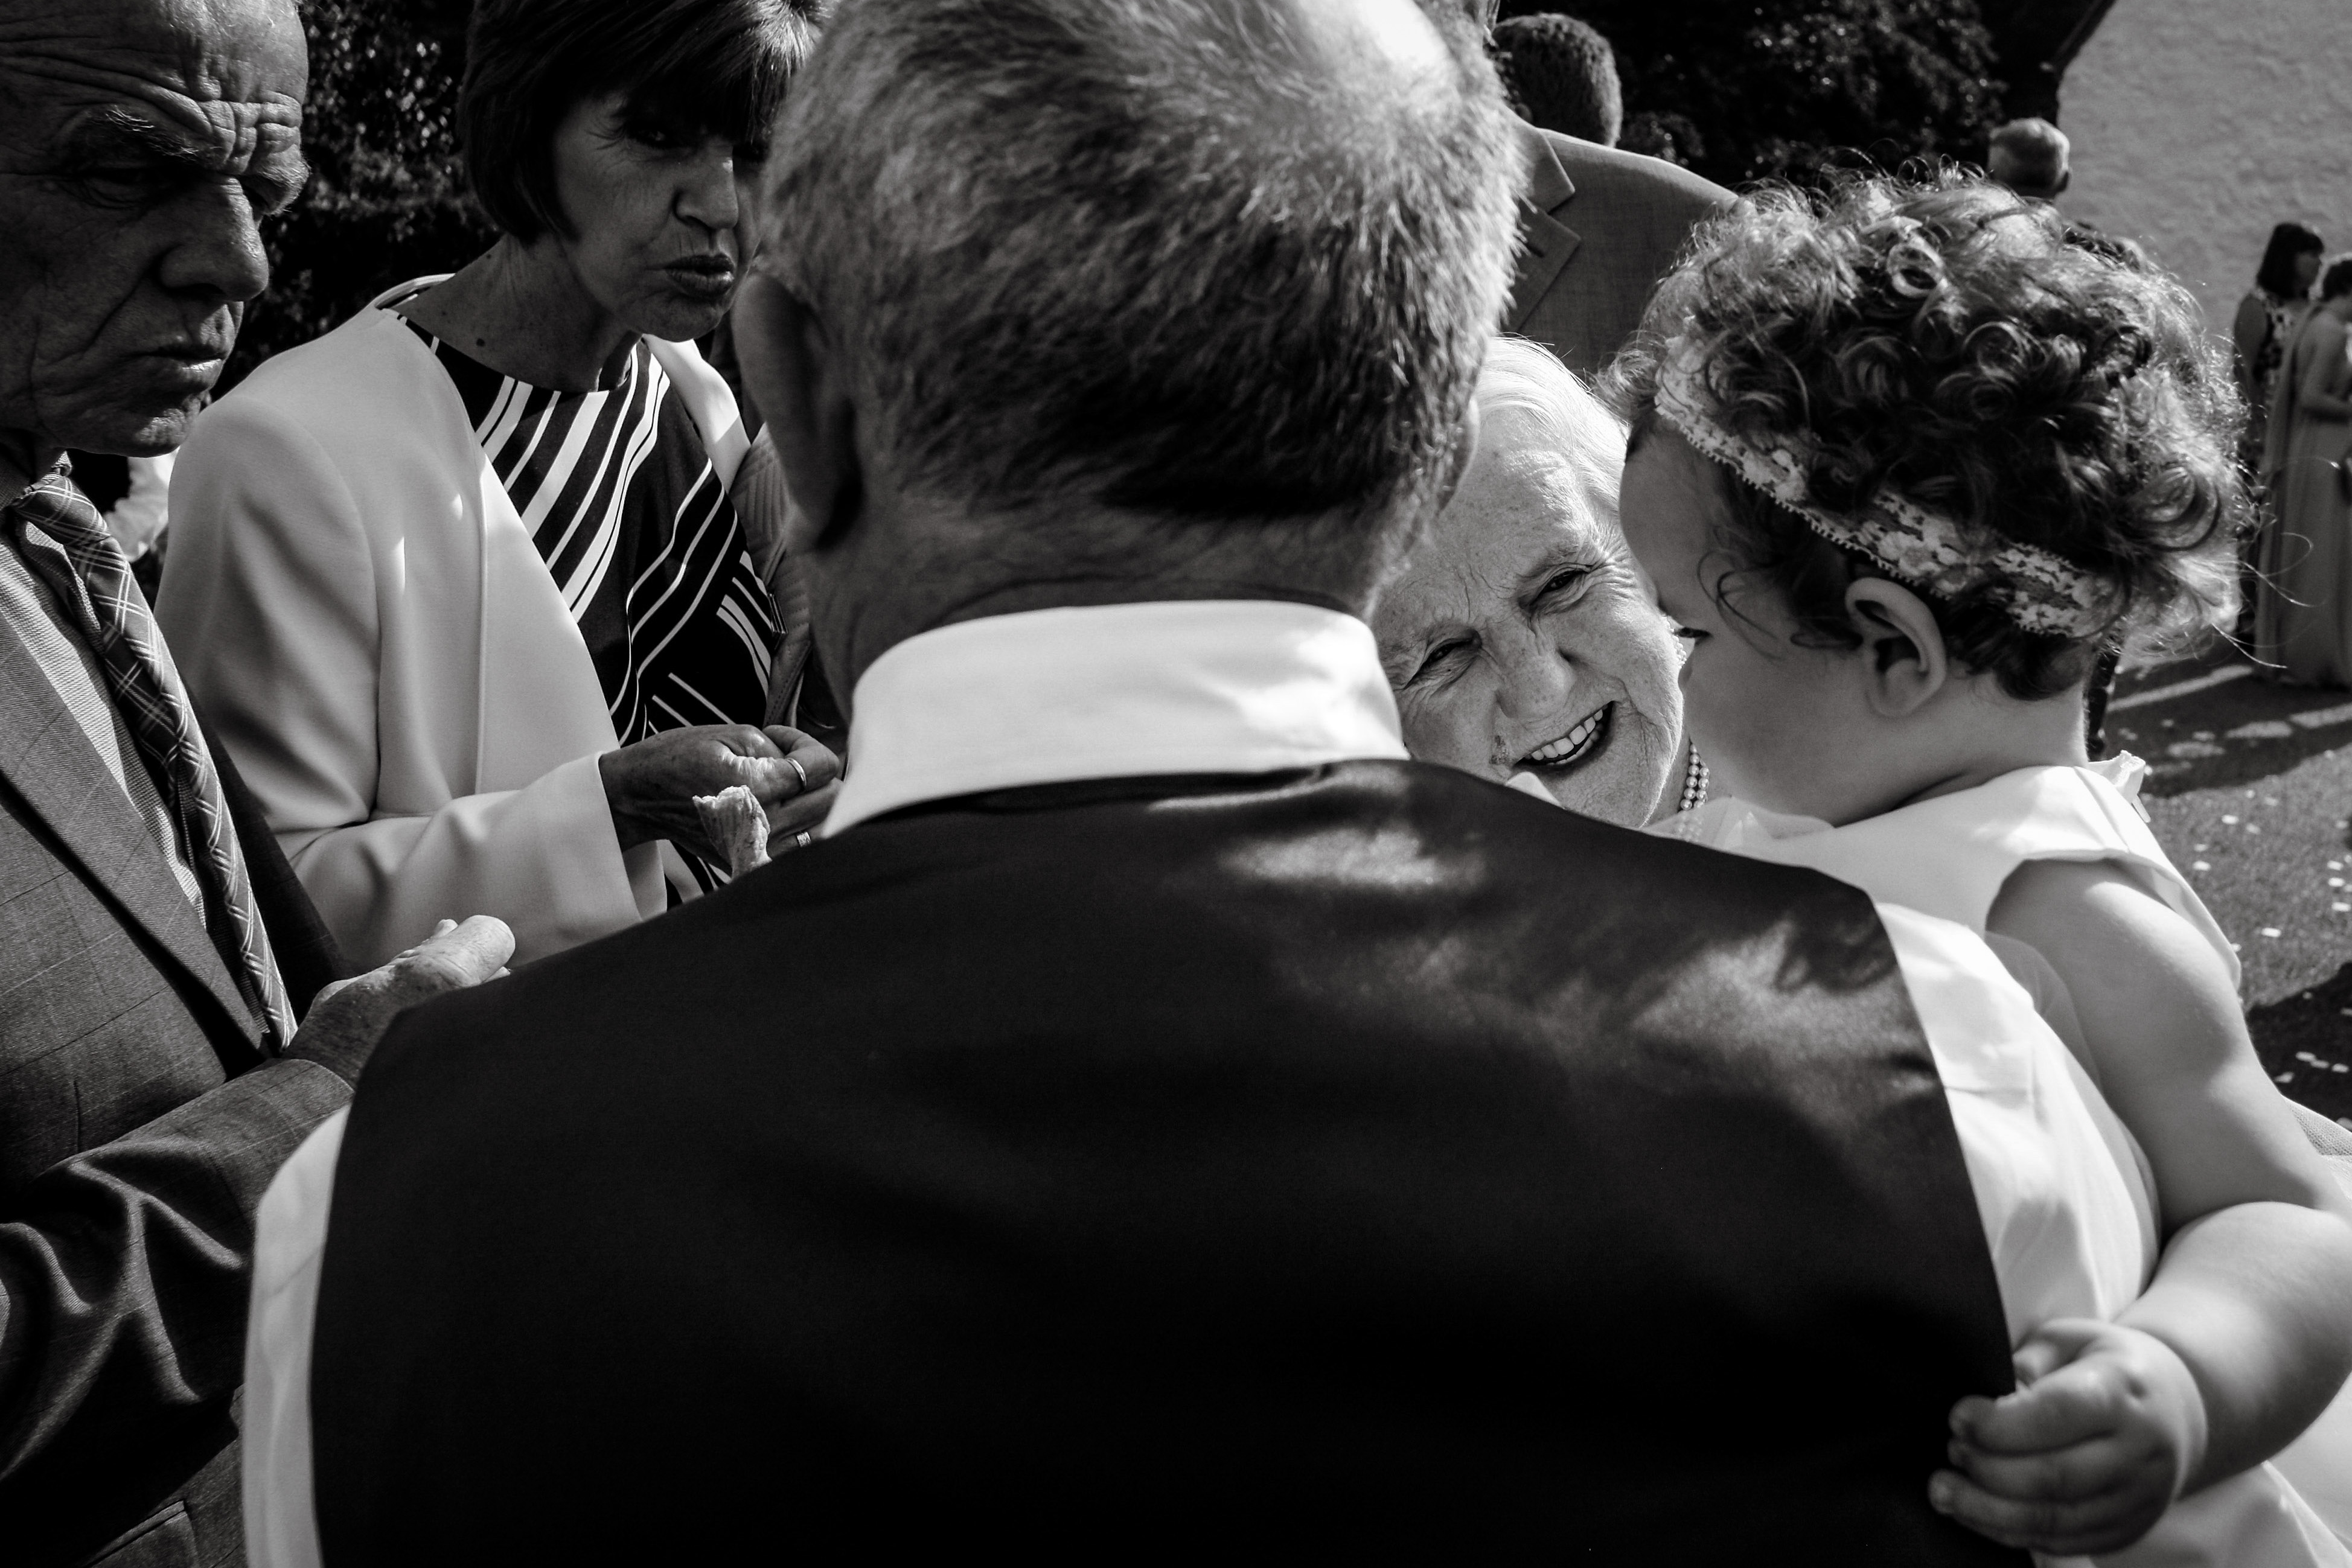 Conway wedding - The look in this photo says it all. Grandmother and her granchild look at each other and smile